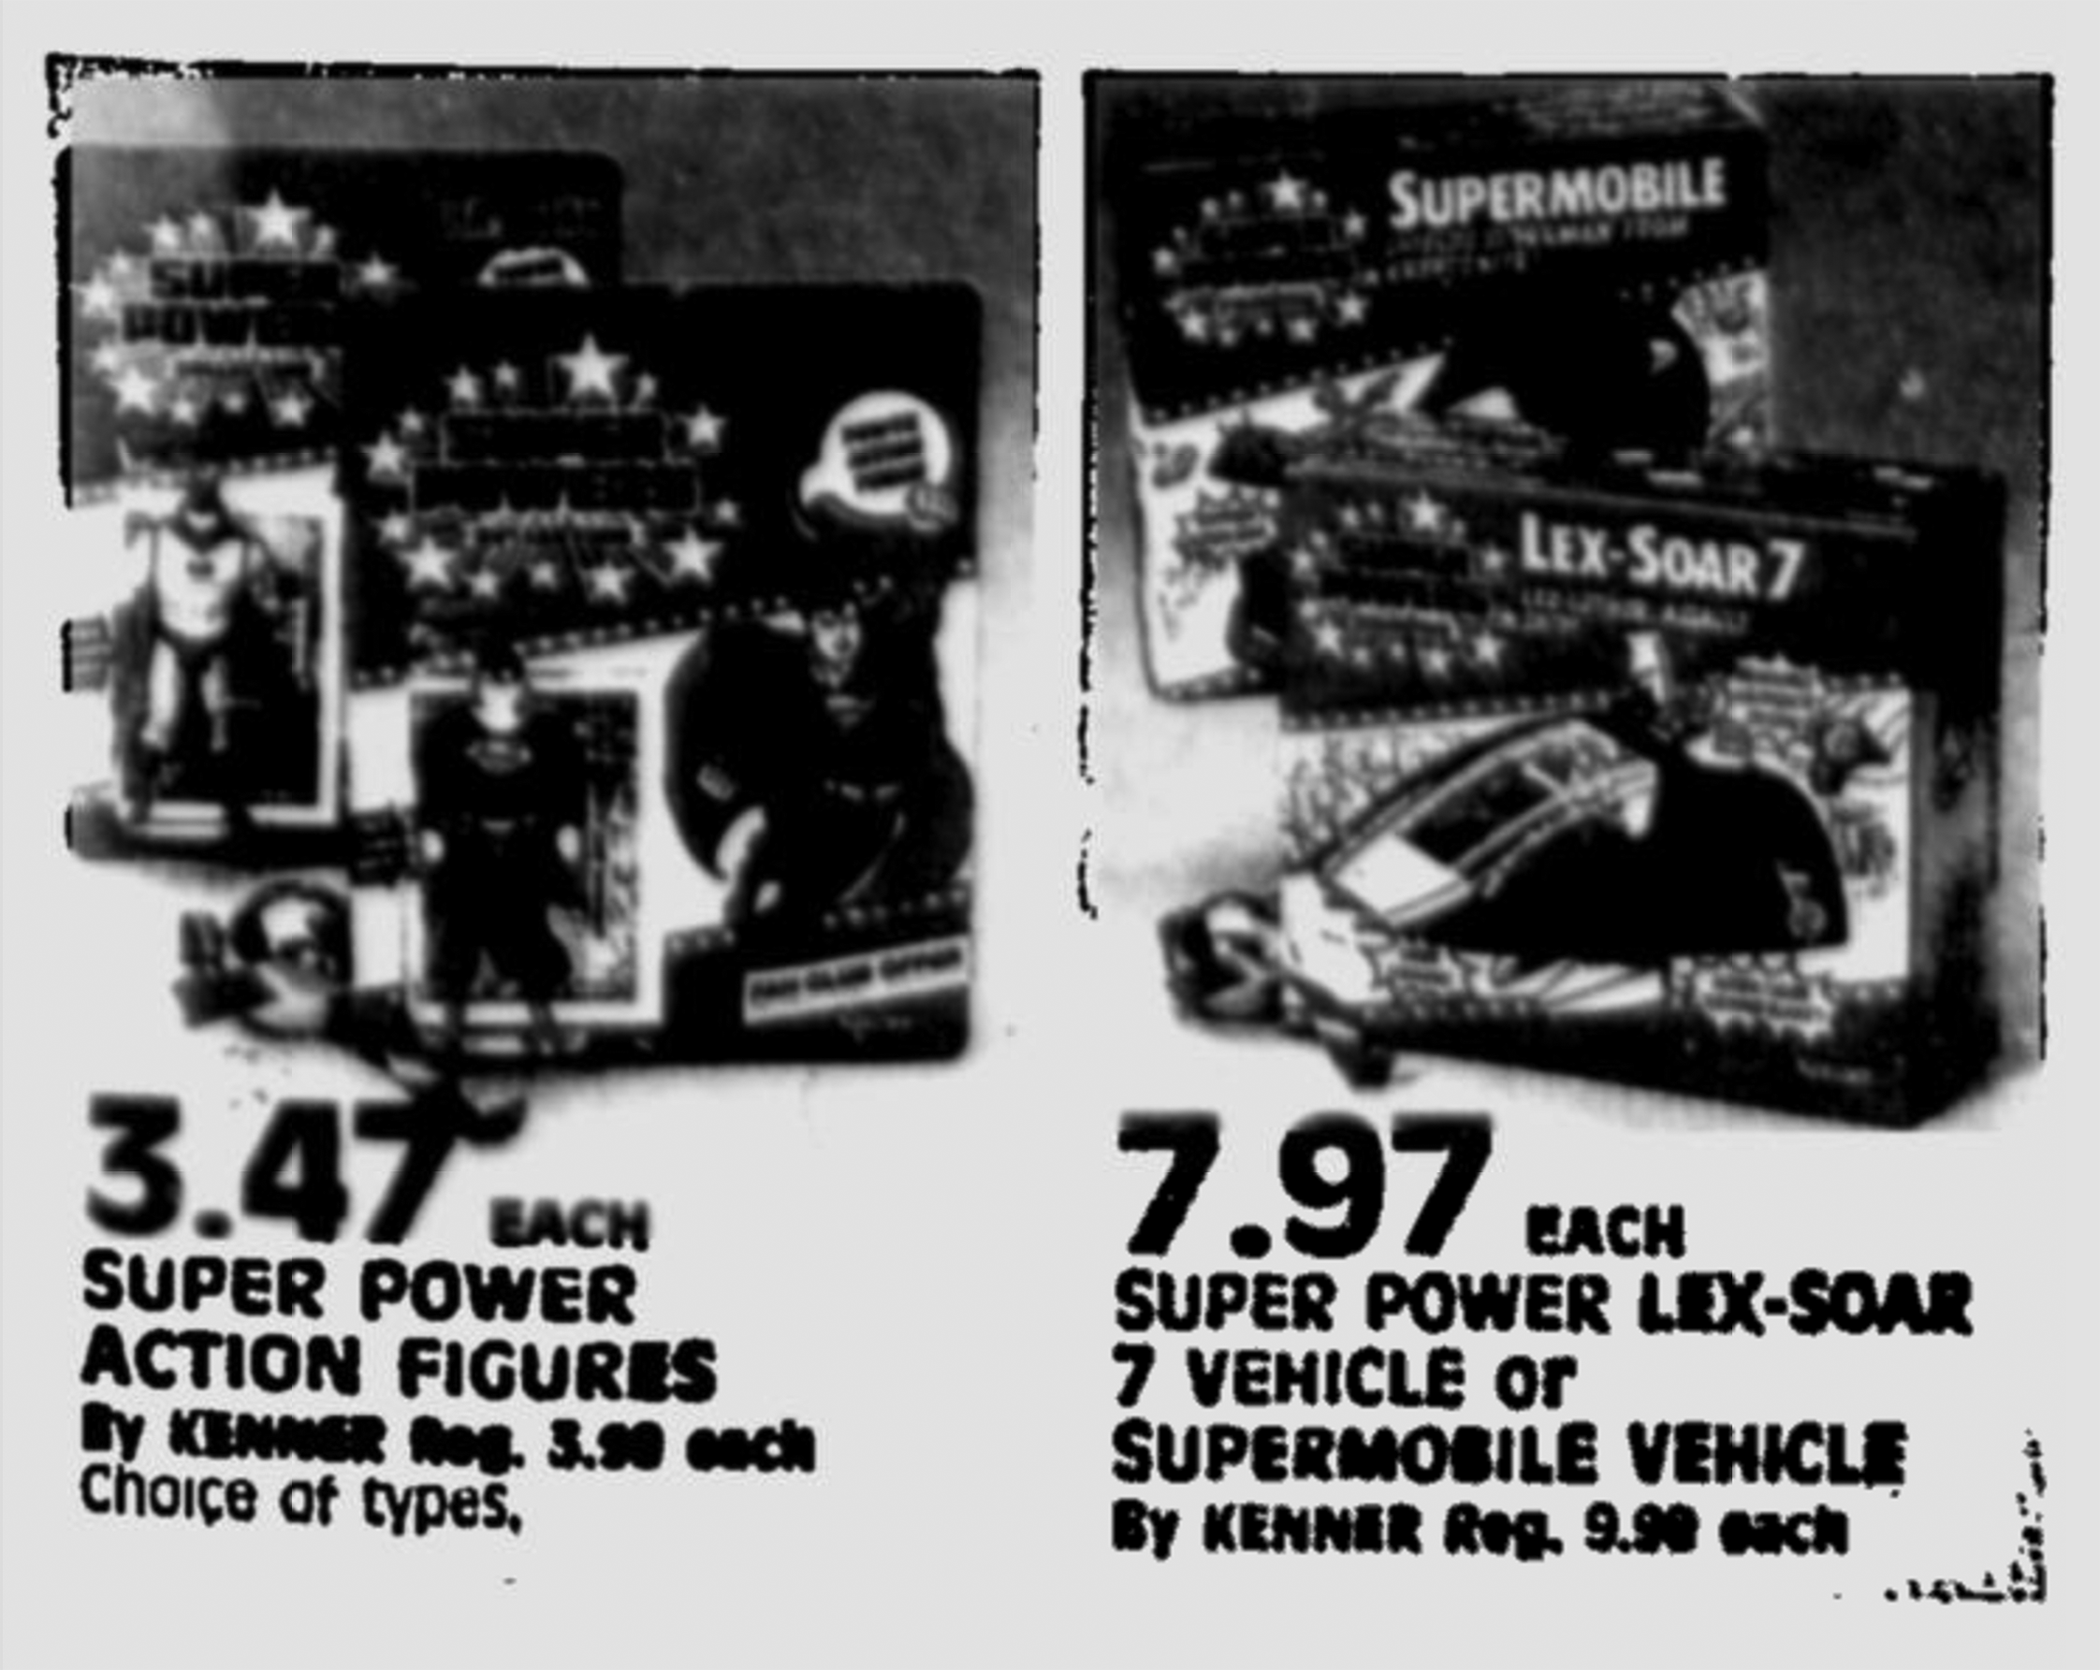 Kenner Super Powers Action Figures and Vehicles on Sale in 1984